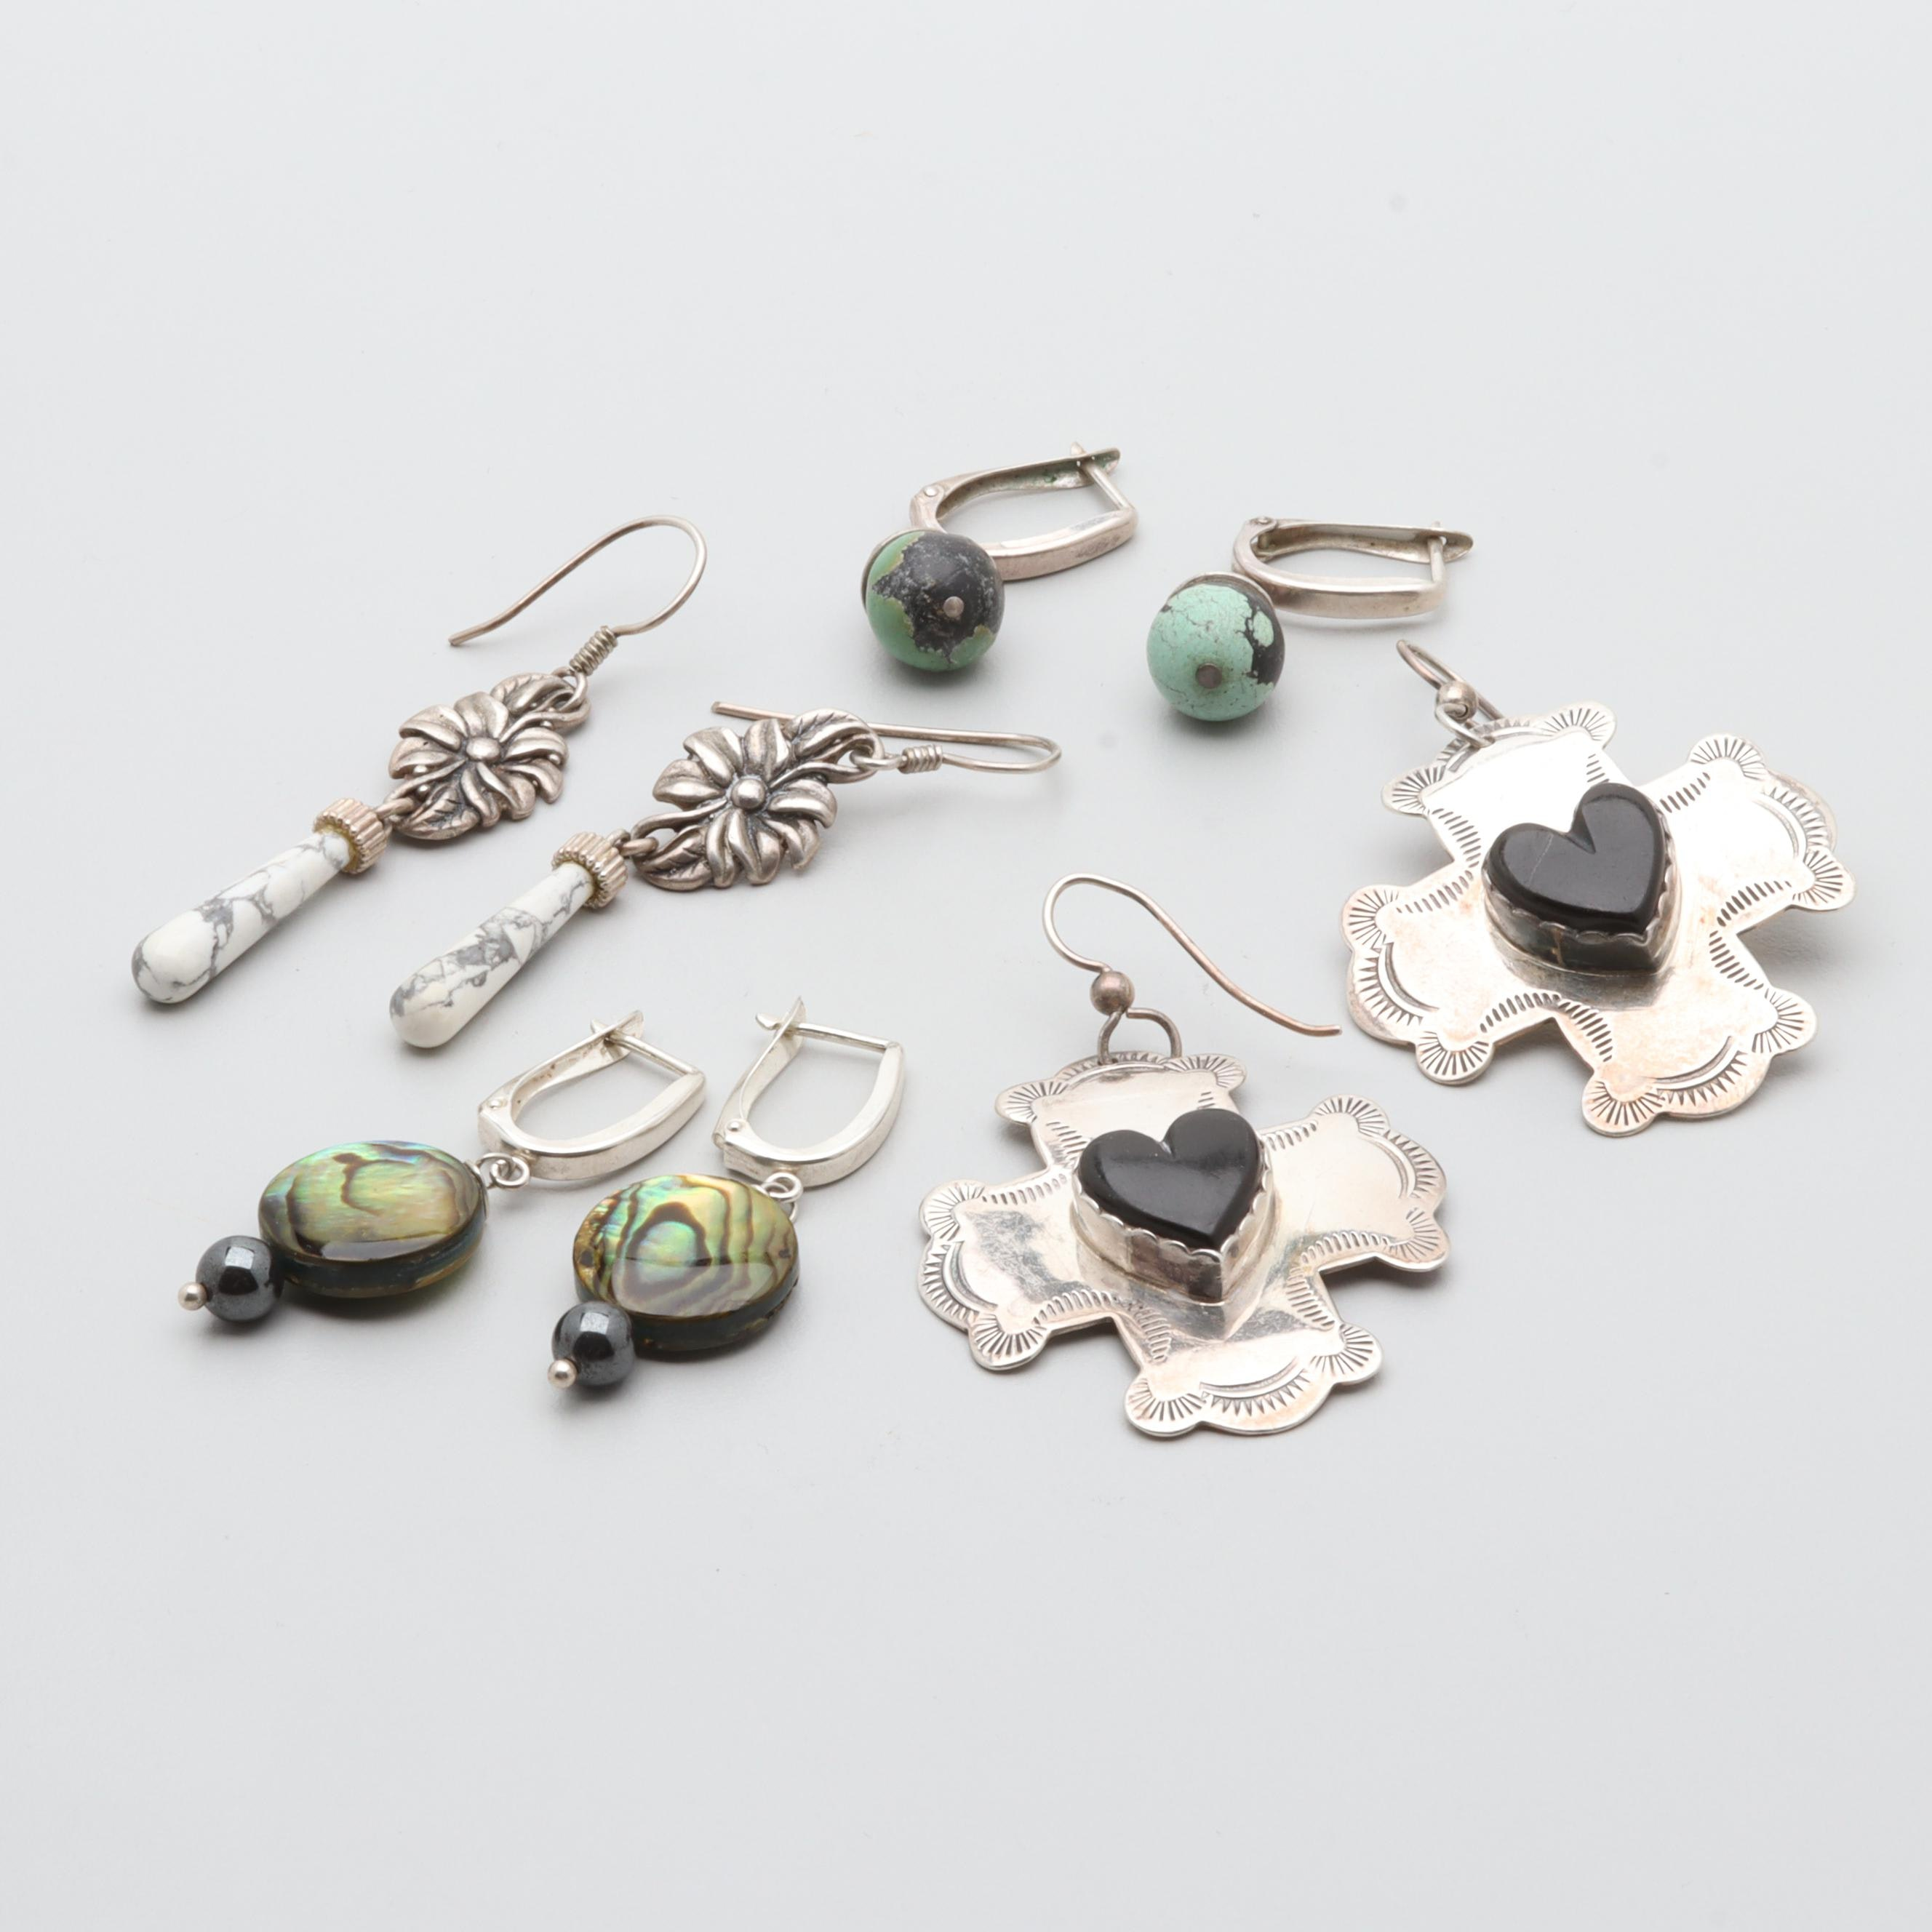 Sterling Silver Earring Selection Including J Slifka Designs, Abalone and Jet